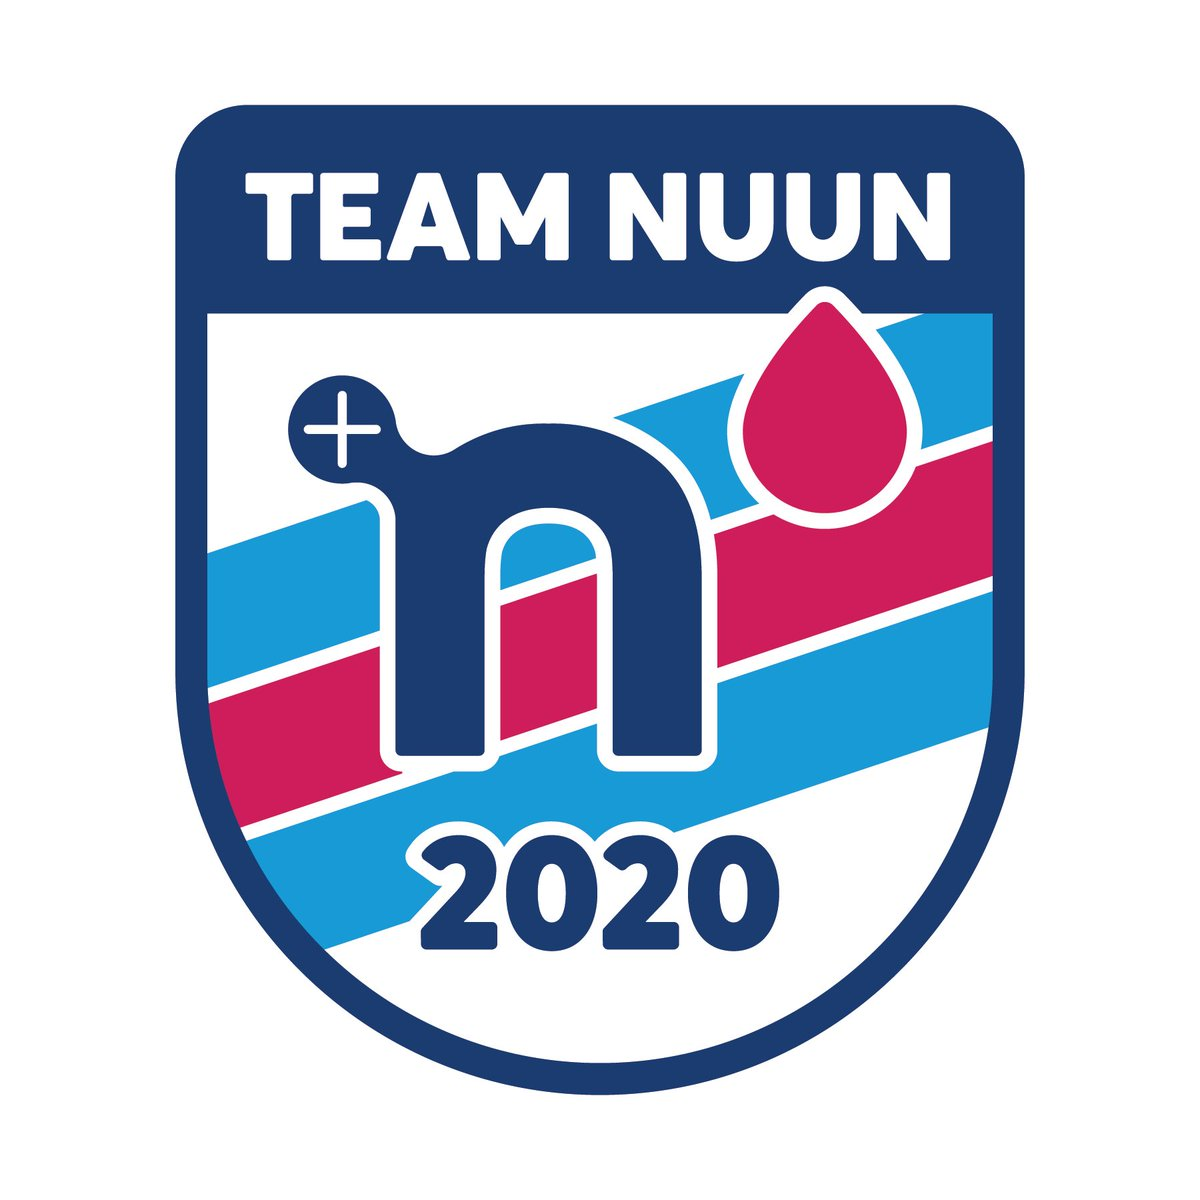 Happy to represent @nuunhydration once again in 2020. Looking forward to training and racing this year knowing that I'm hydrated by the best. #teamnuun #nuunambassador #nuunlife #nuunlove #makeyourwatercount #hydrate #Sponsored #trailrunning #run #trailtunner #marathon<br>http://pic.twitter.com/iWekIH7ZmB